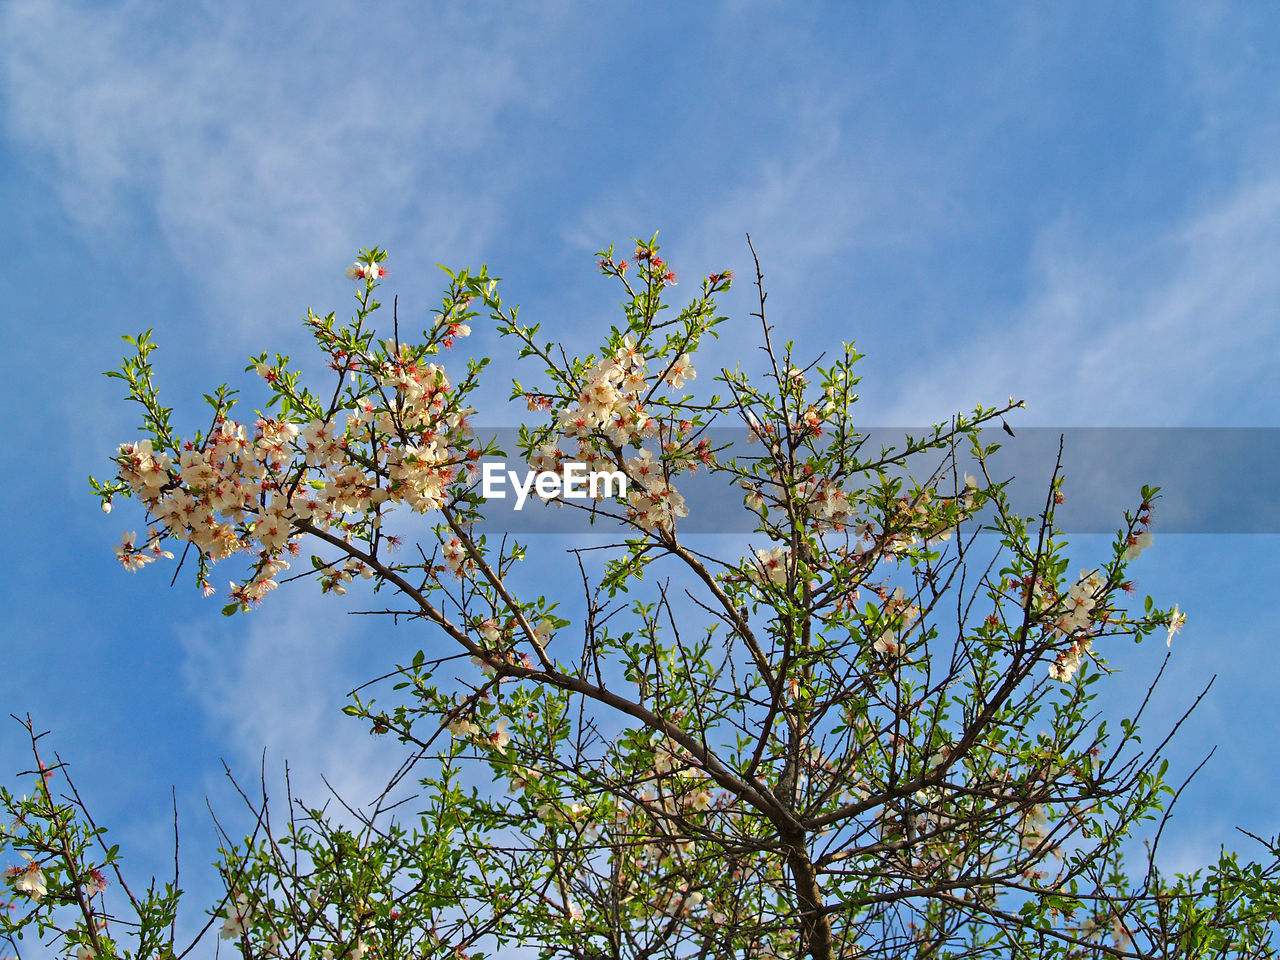 growth, flower, nature, low angle view, beauty in nature, sky, blossom, fragility, plant, tree, branch, freshness, no people, blue, day, outdoors, springtime, cloud - sky, close-up